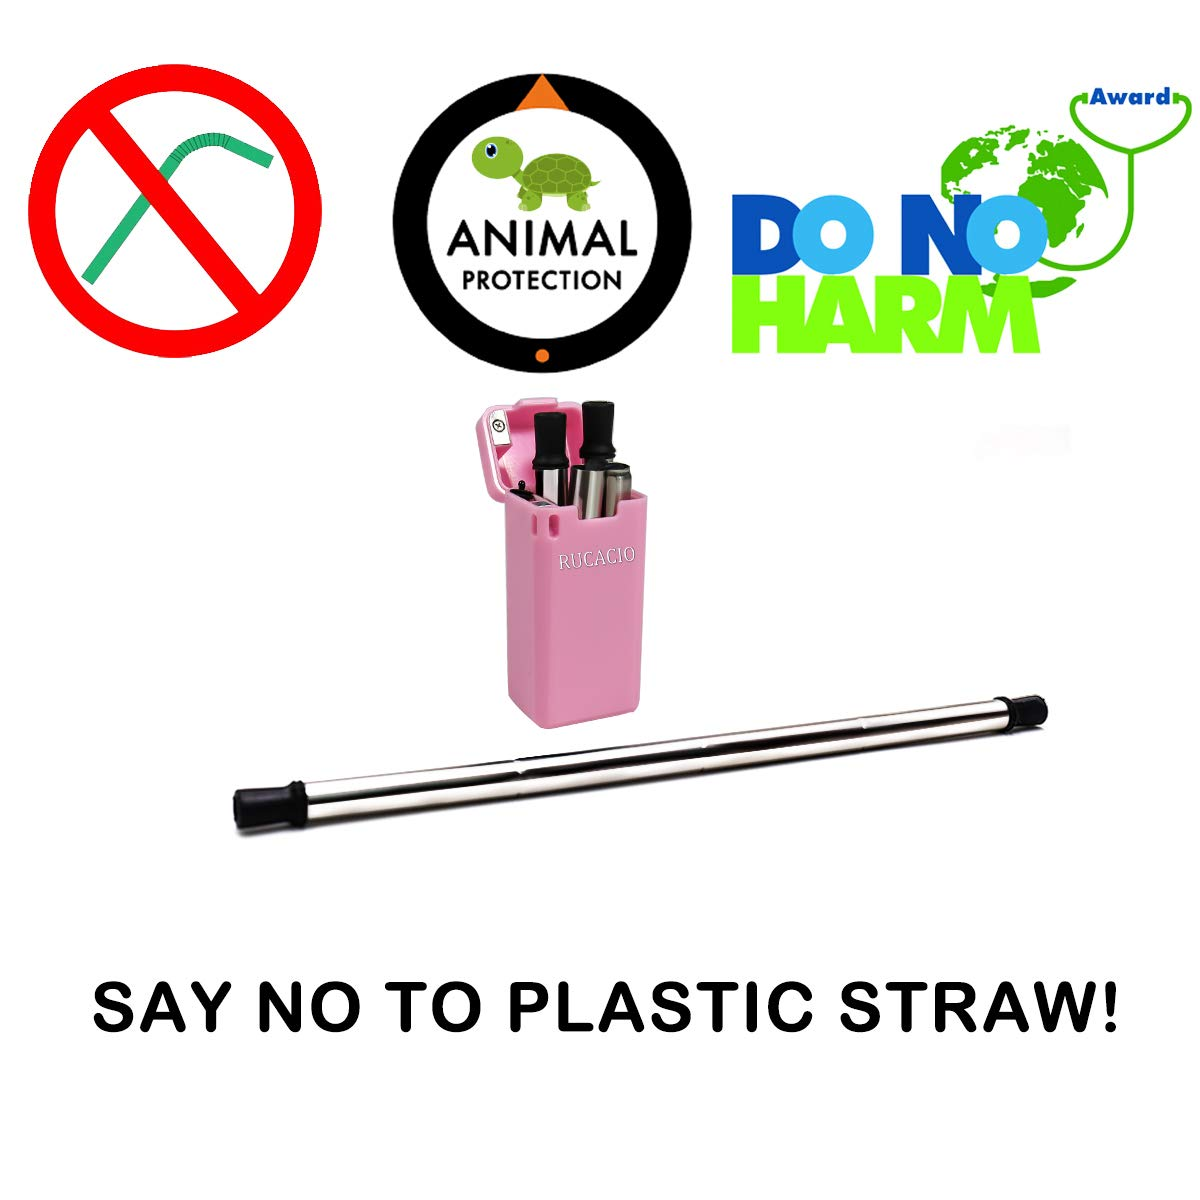 RUCACIO Collapsible Reusable Stainless Straw Medical-Grade Food-Grade Drinking Straws Portable with Hard Case Cleaning Brush (Pink) by RUCACIO (Image #3)